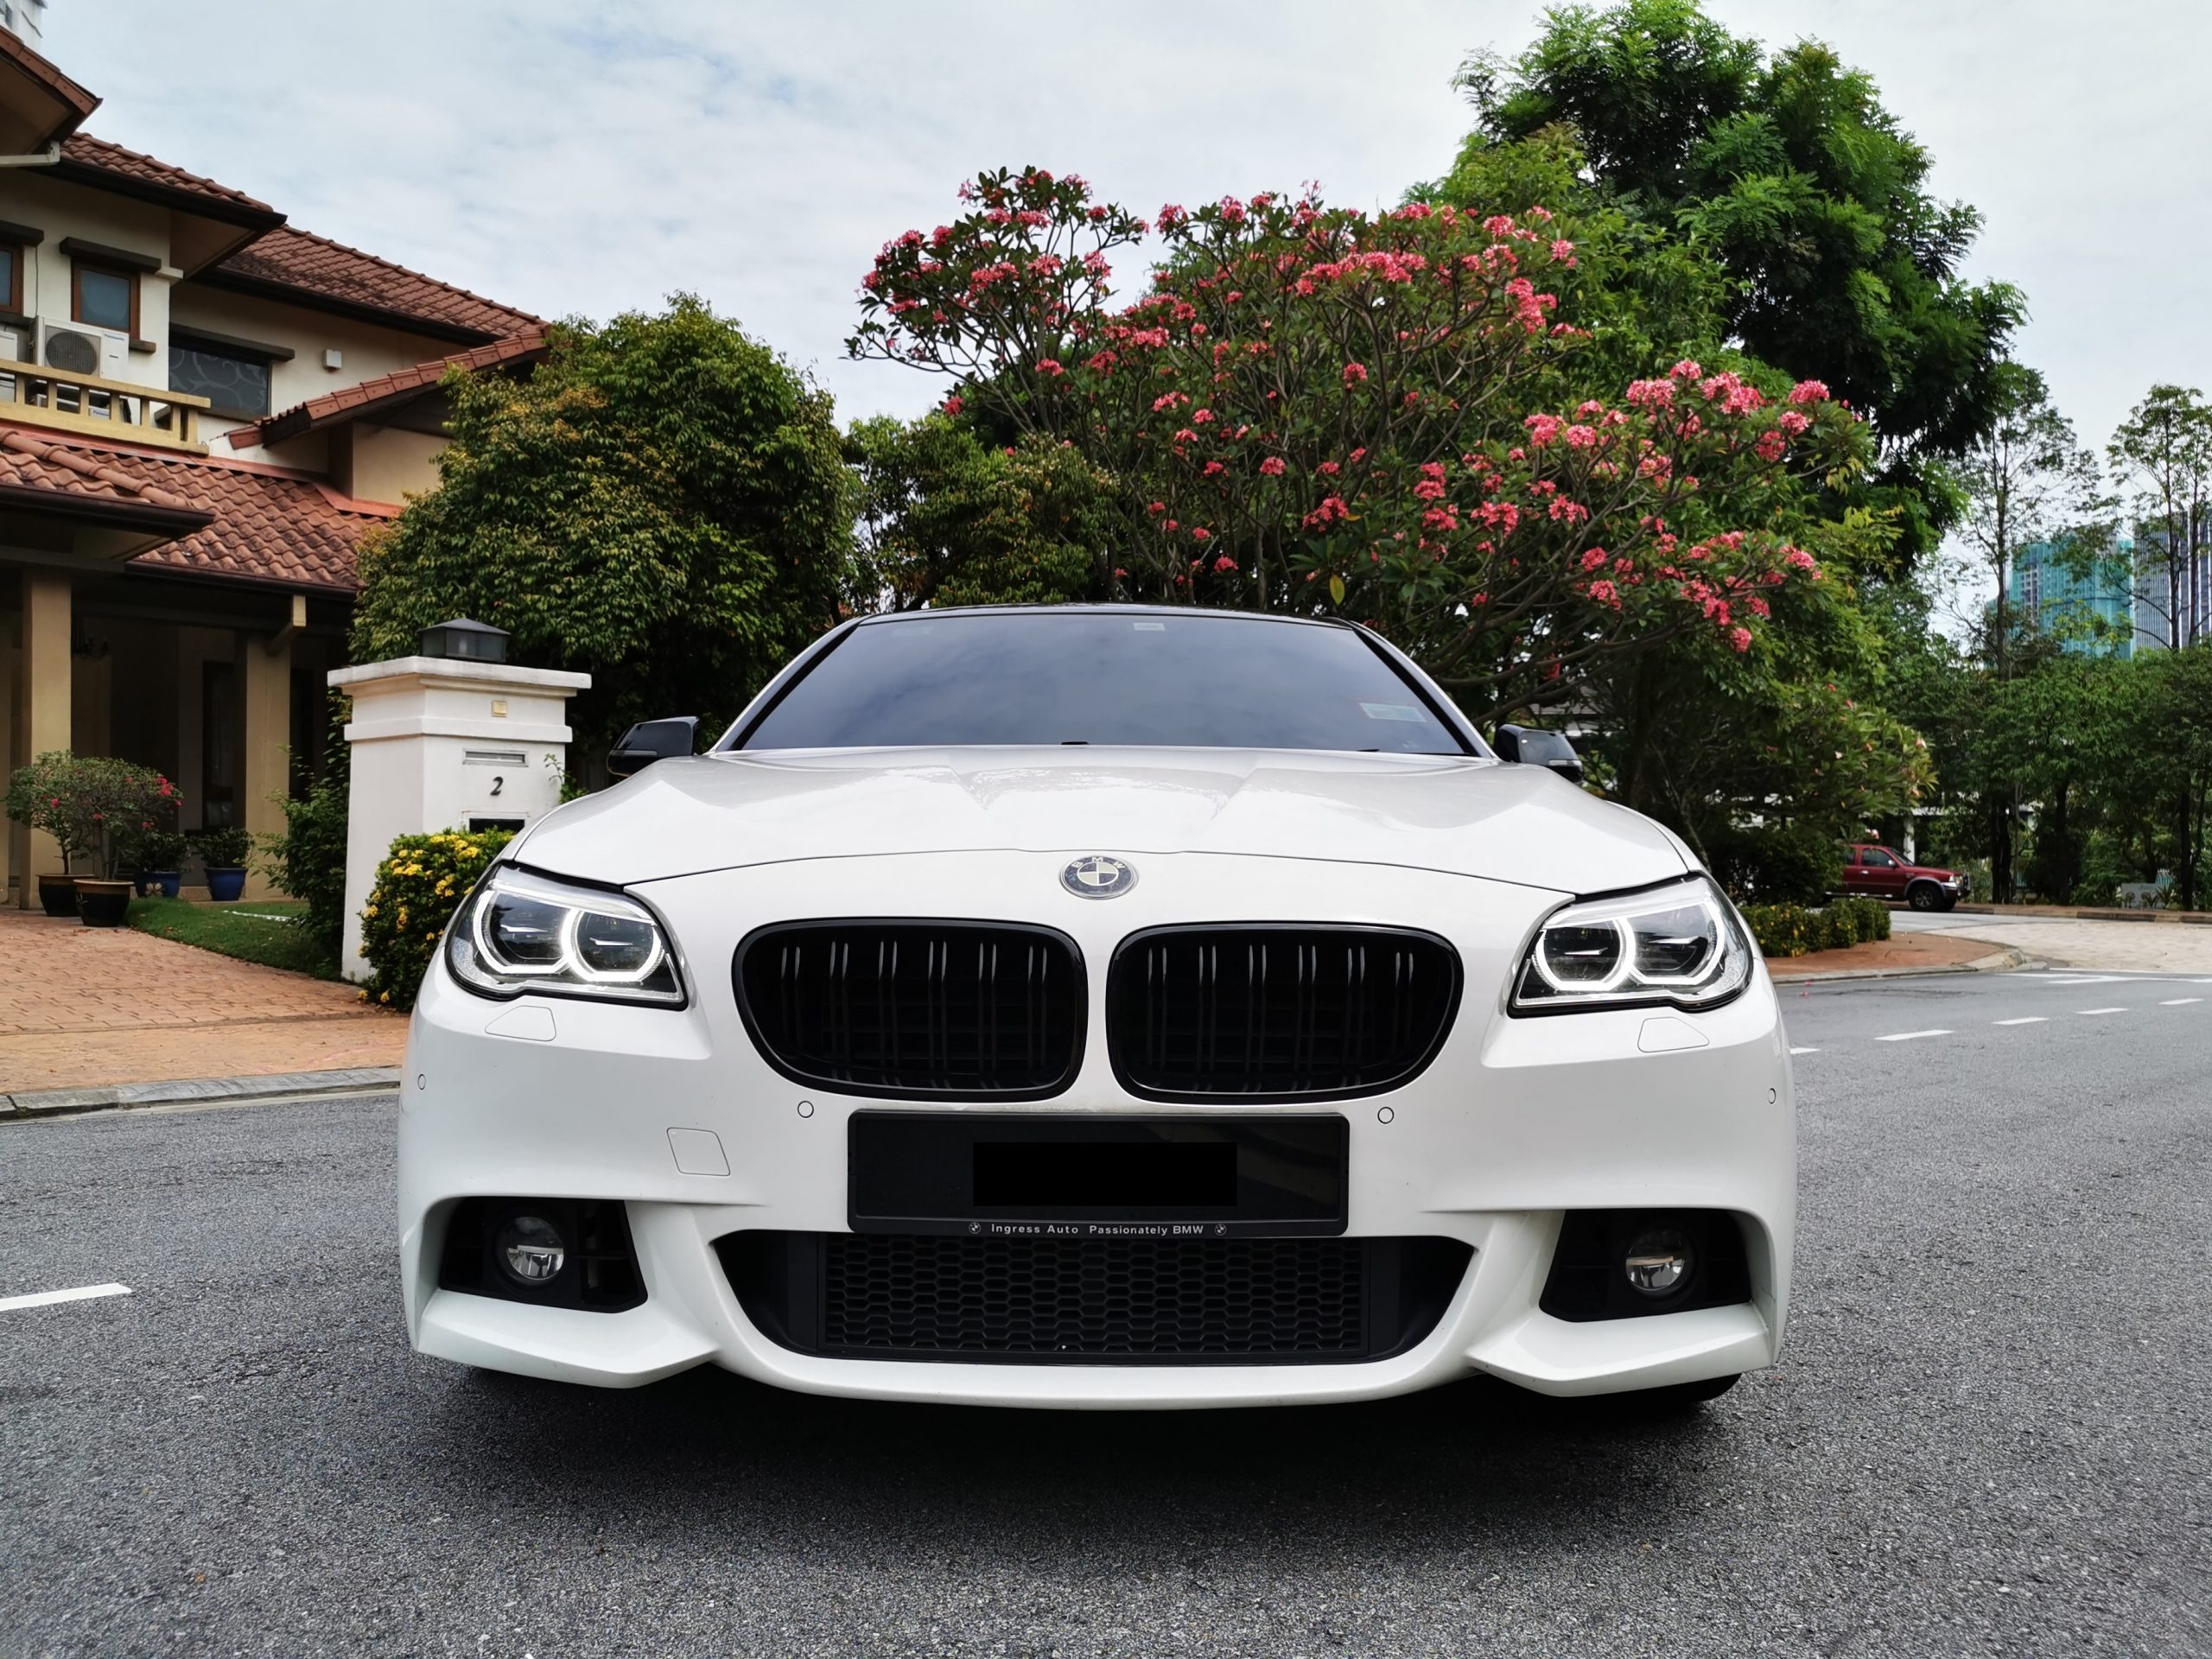 BMW 528i Front view grille